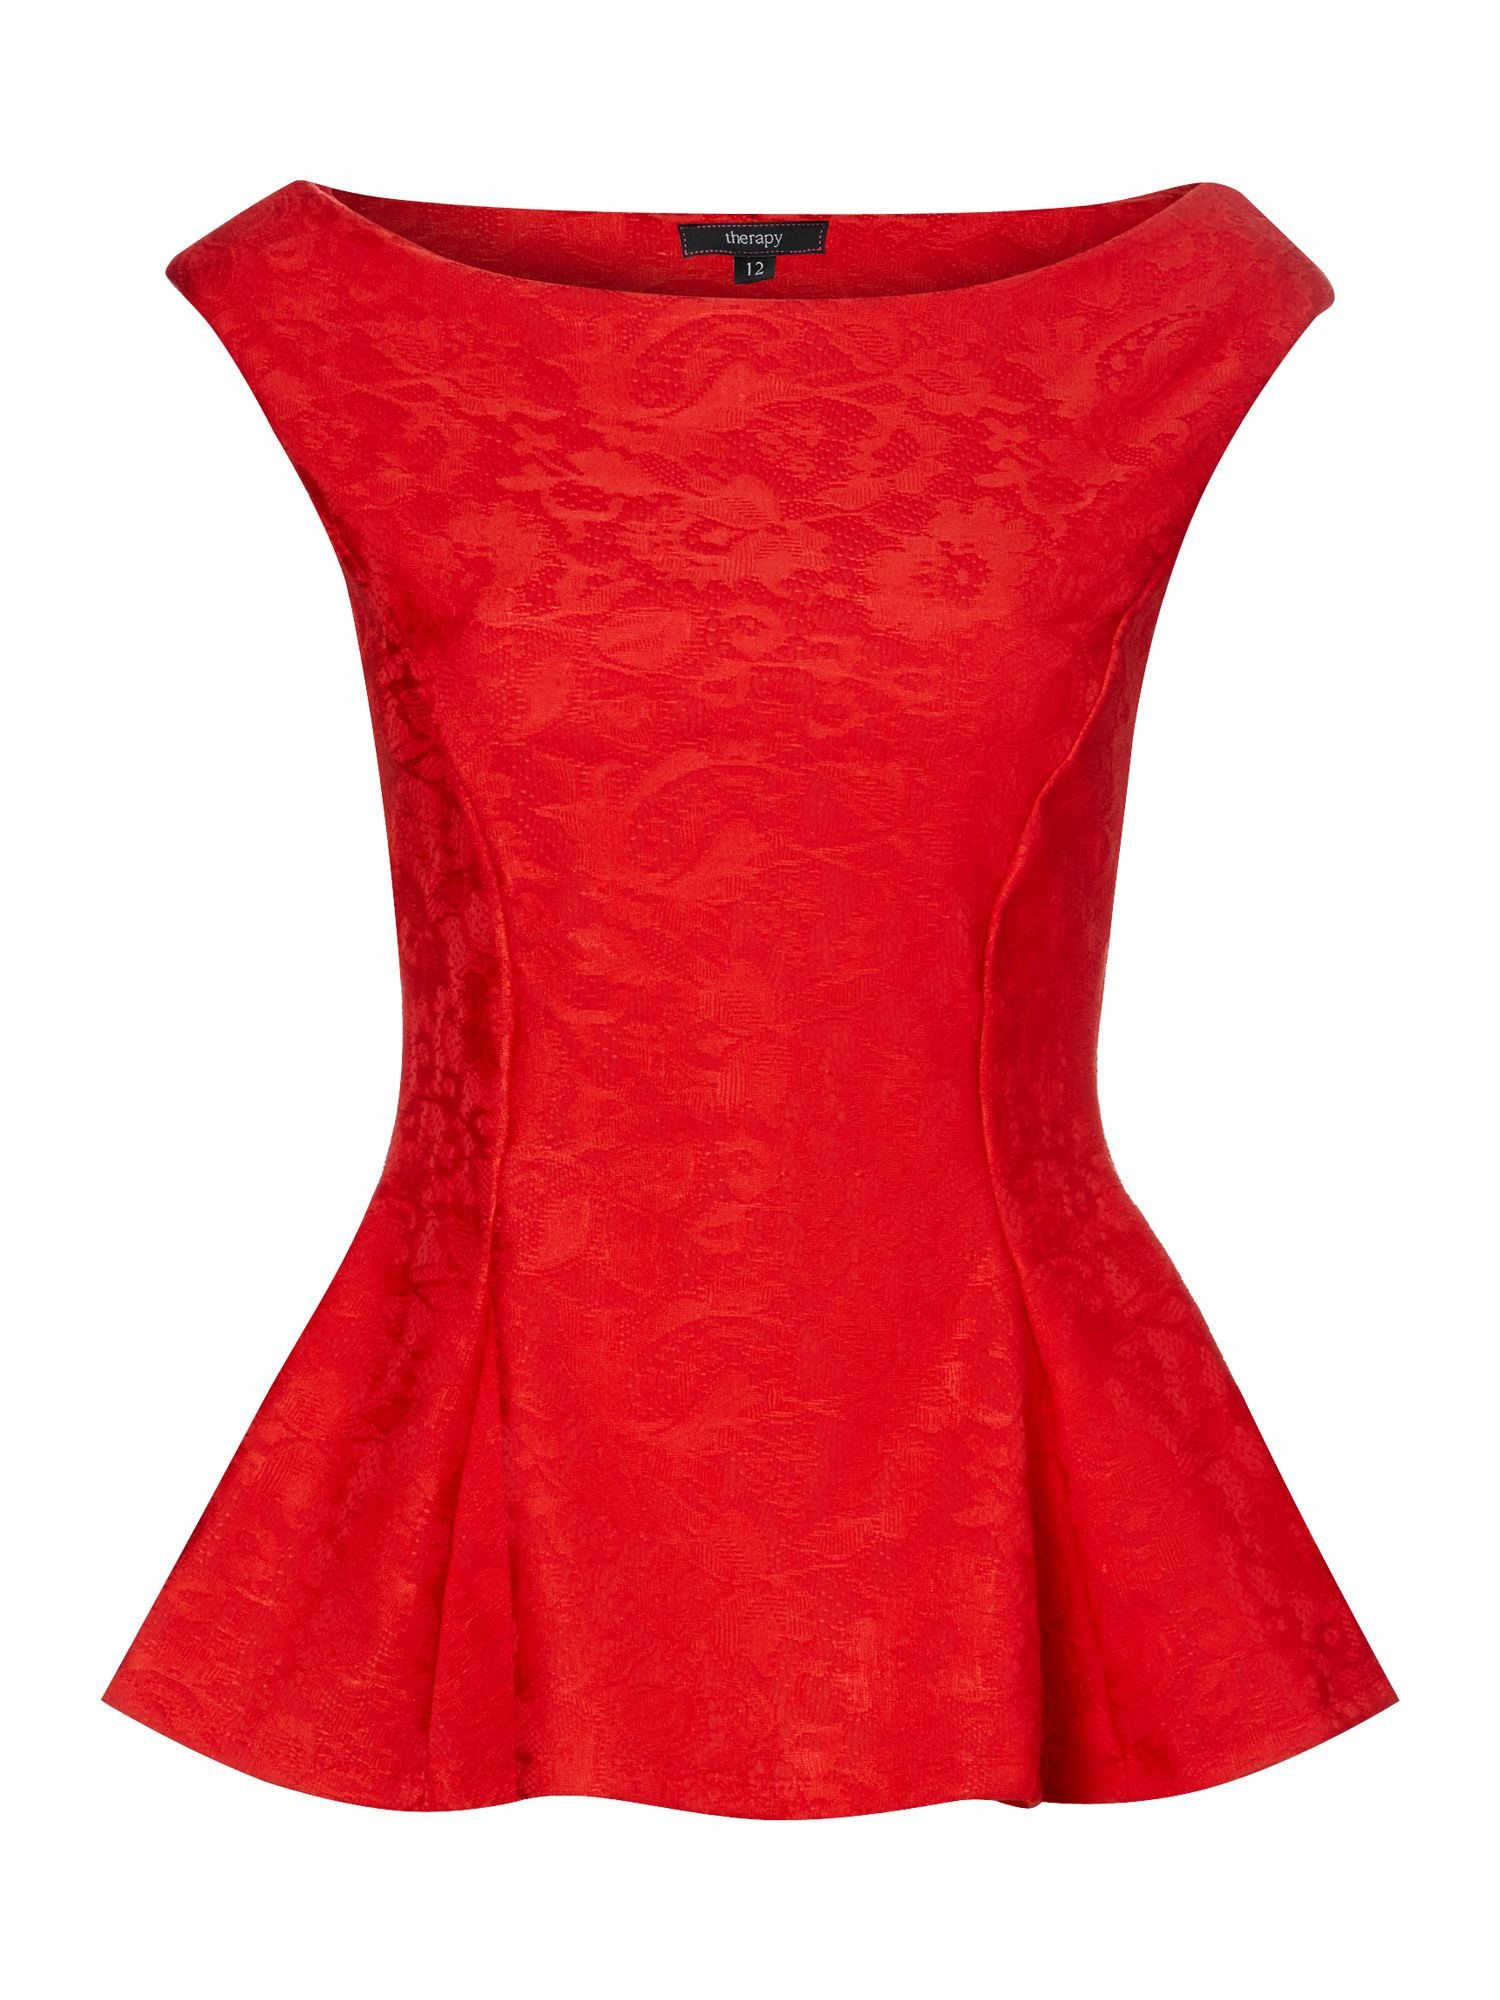 Therapy Bonded Lace Peplum Top in Red | Lyst